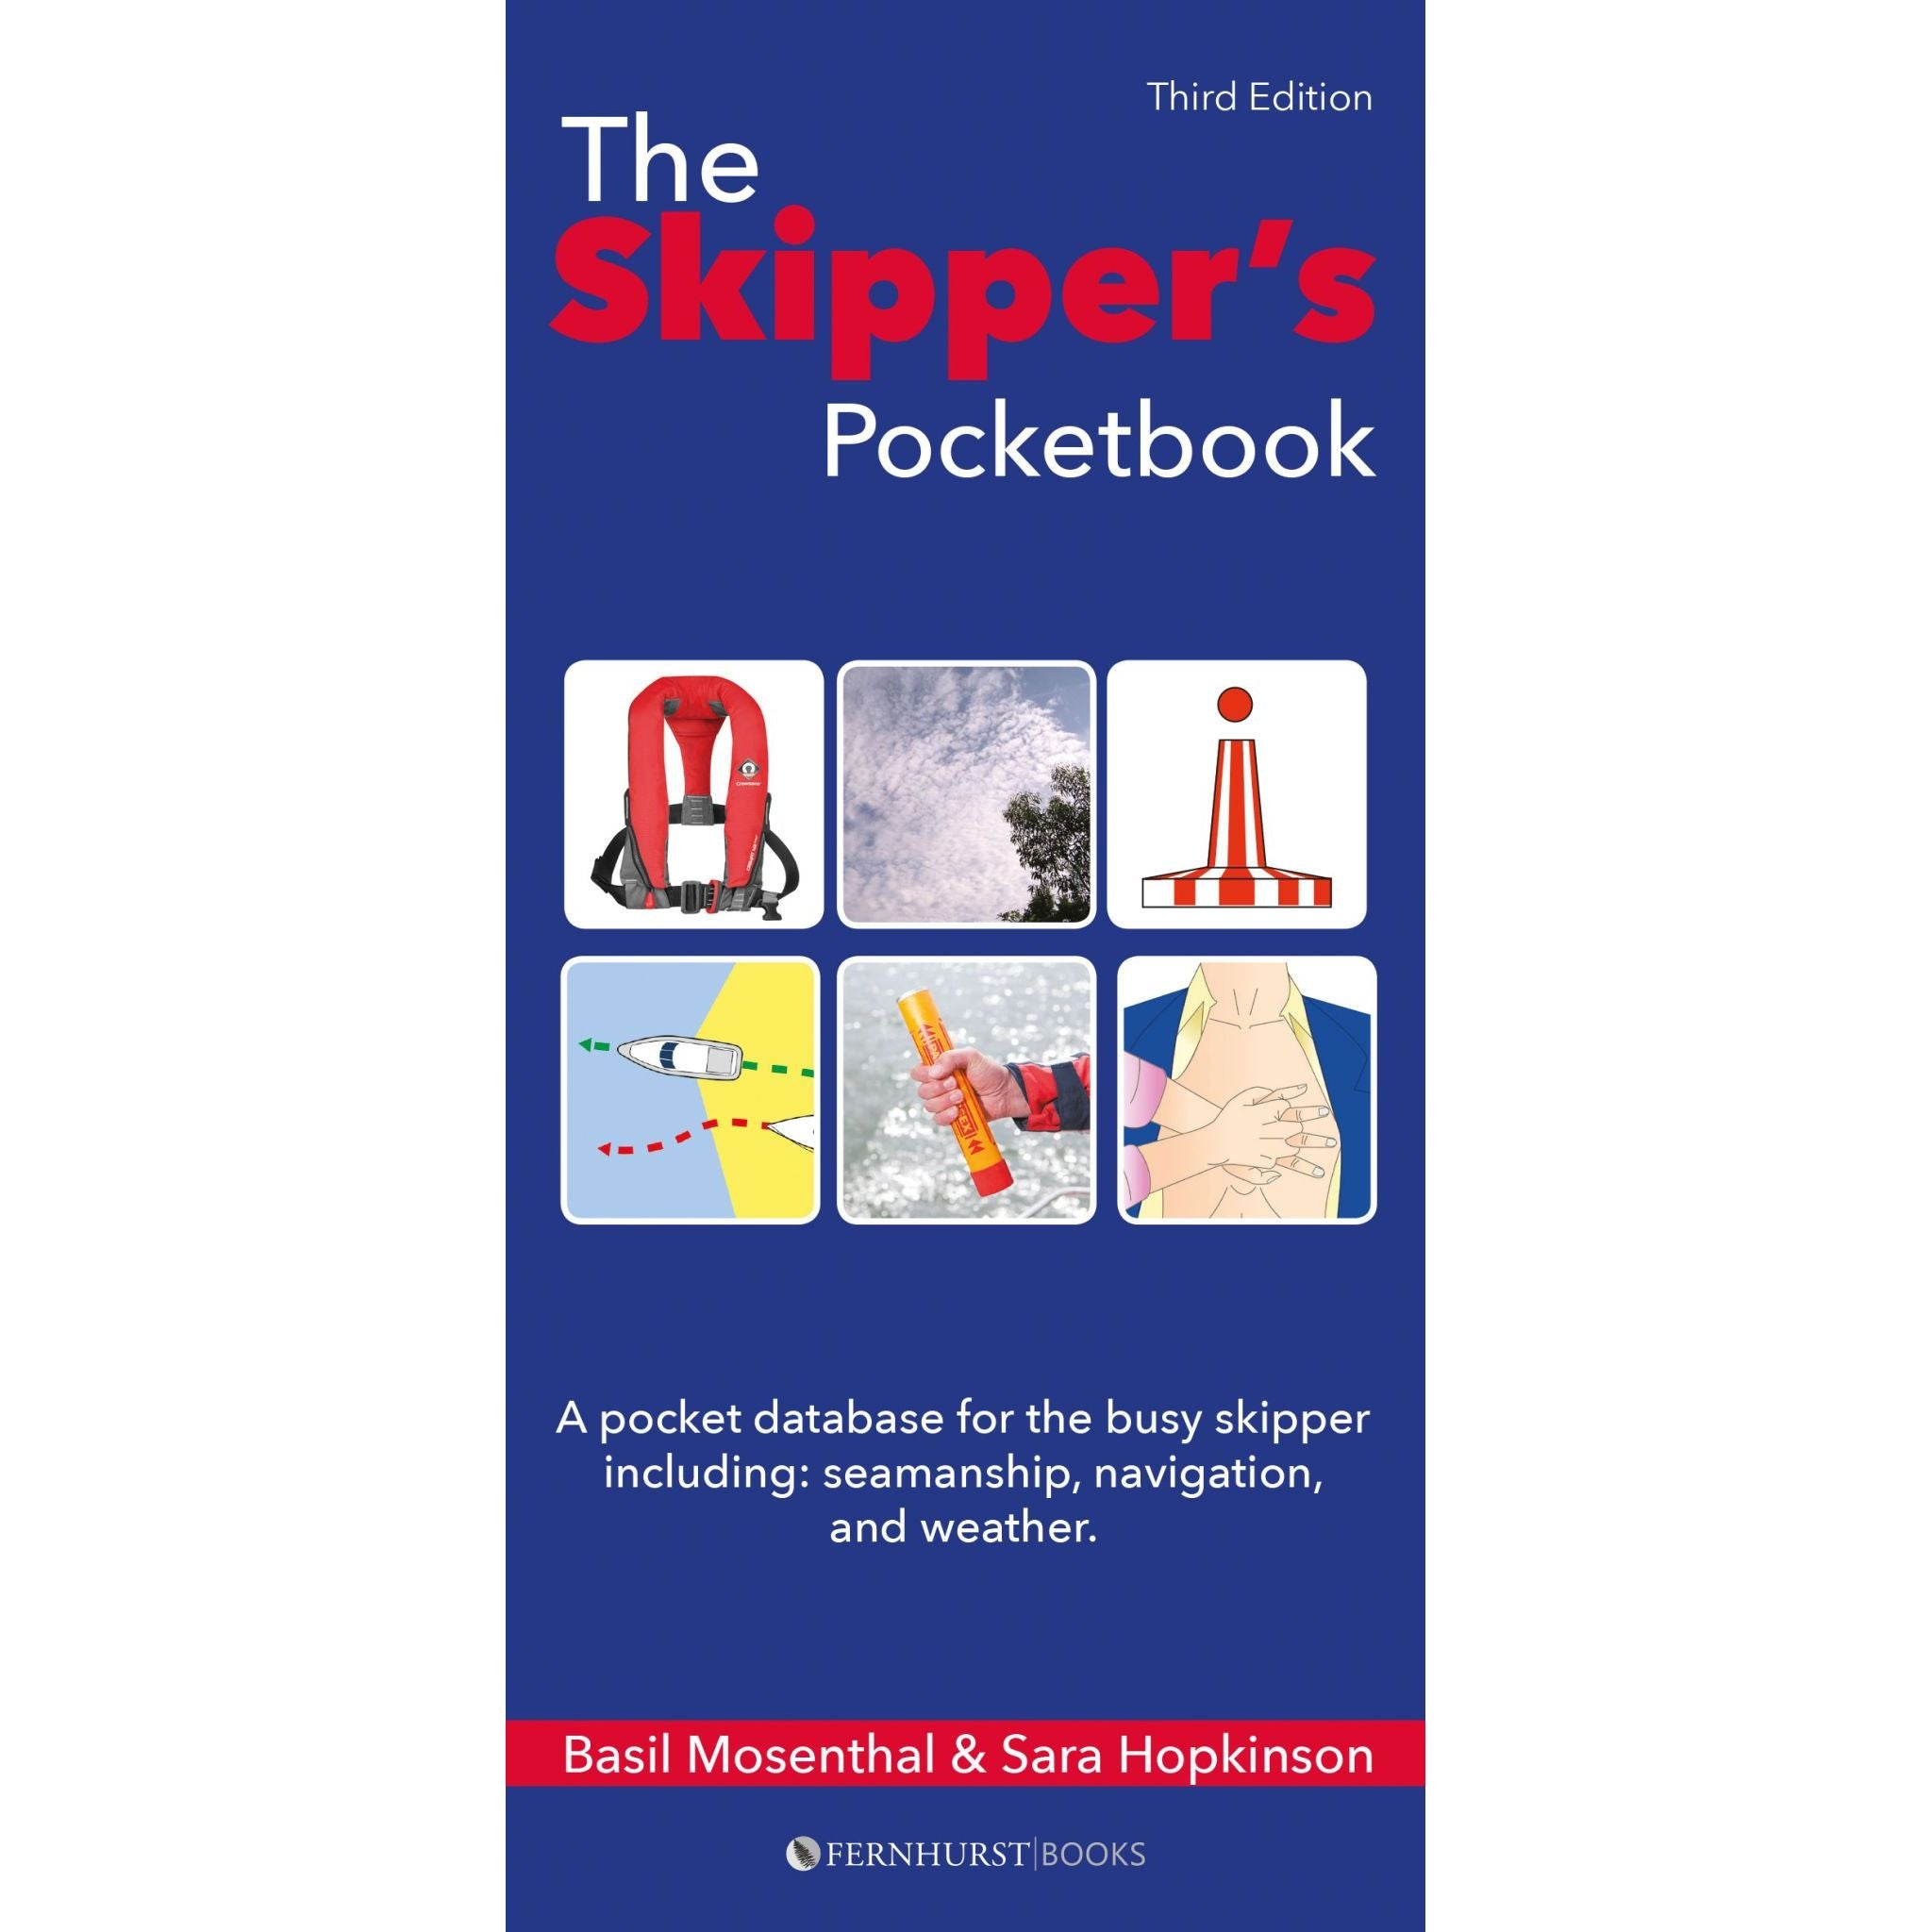 The Skipper's Pocketbook